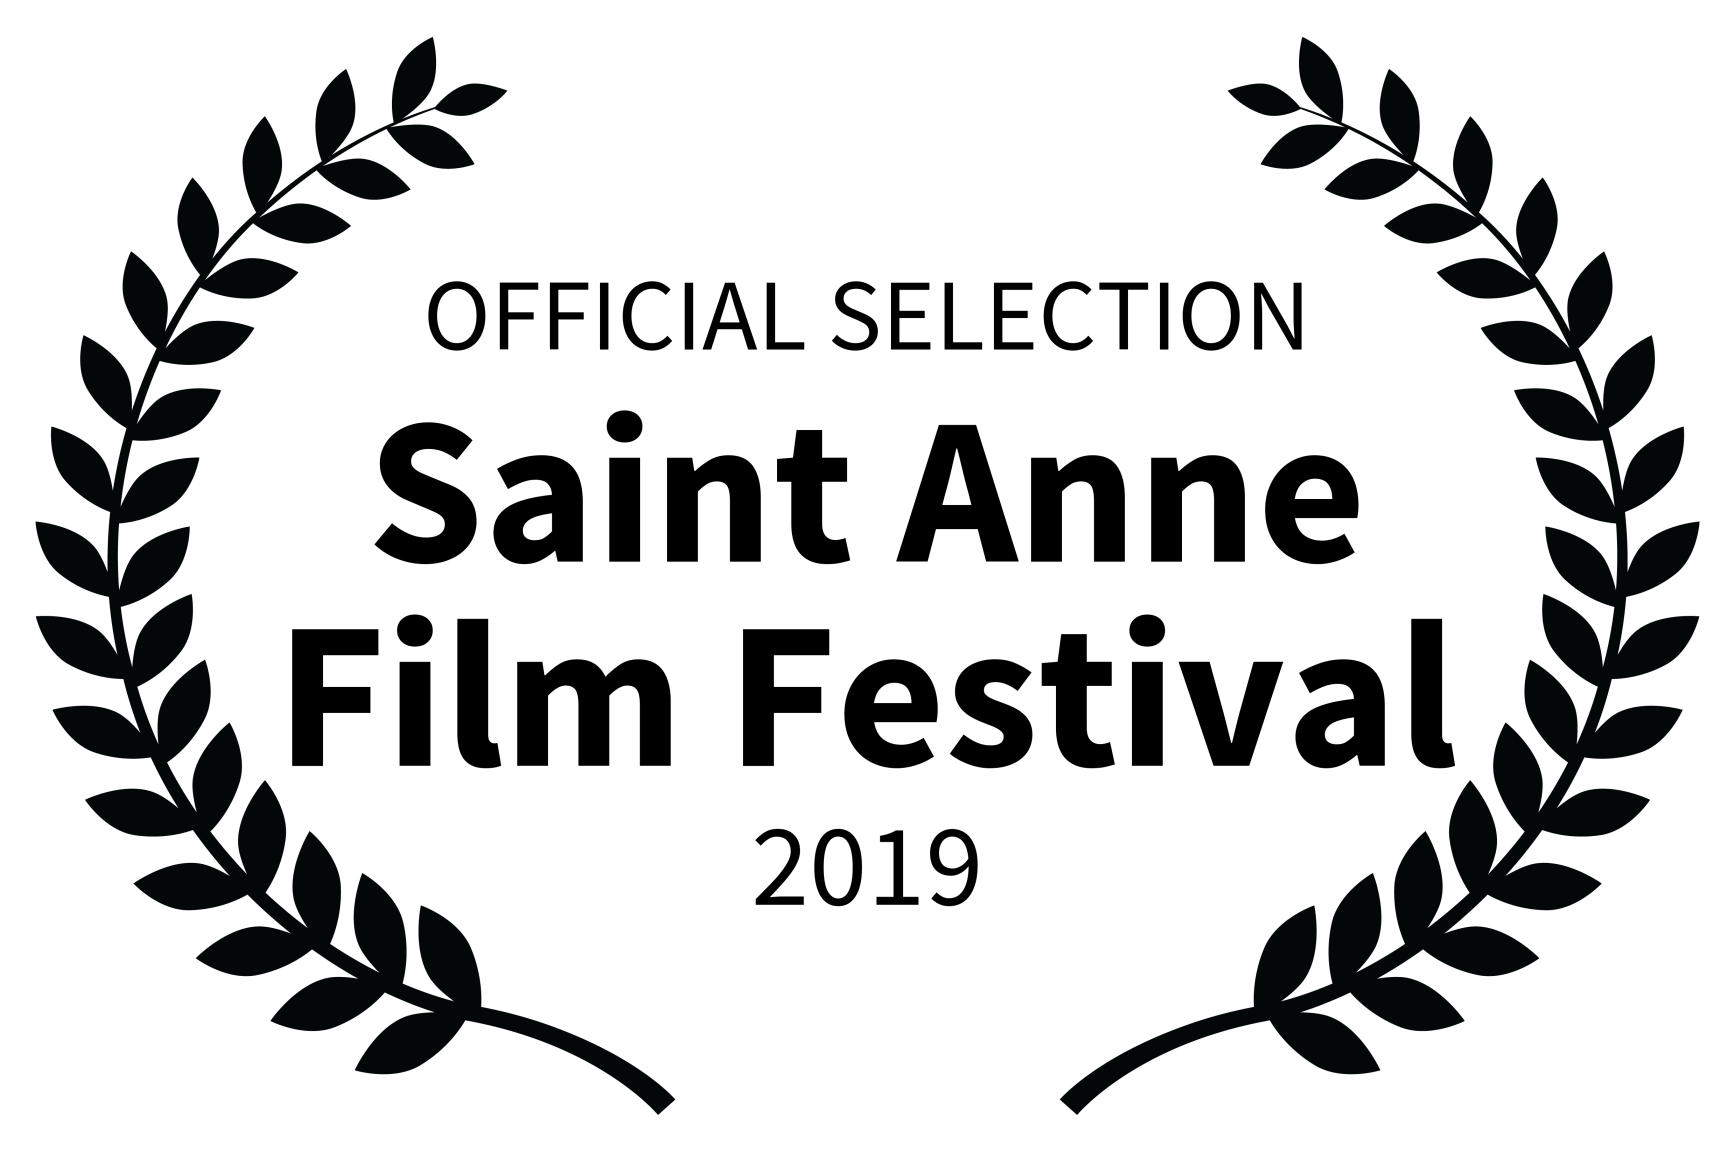 OFFICIAL SELECTION - Saint Anne Film Fes